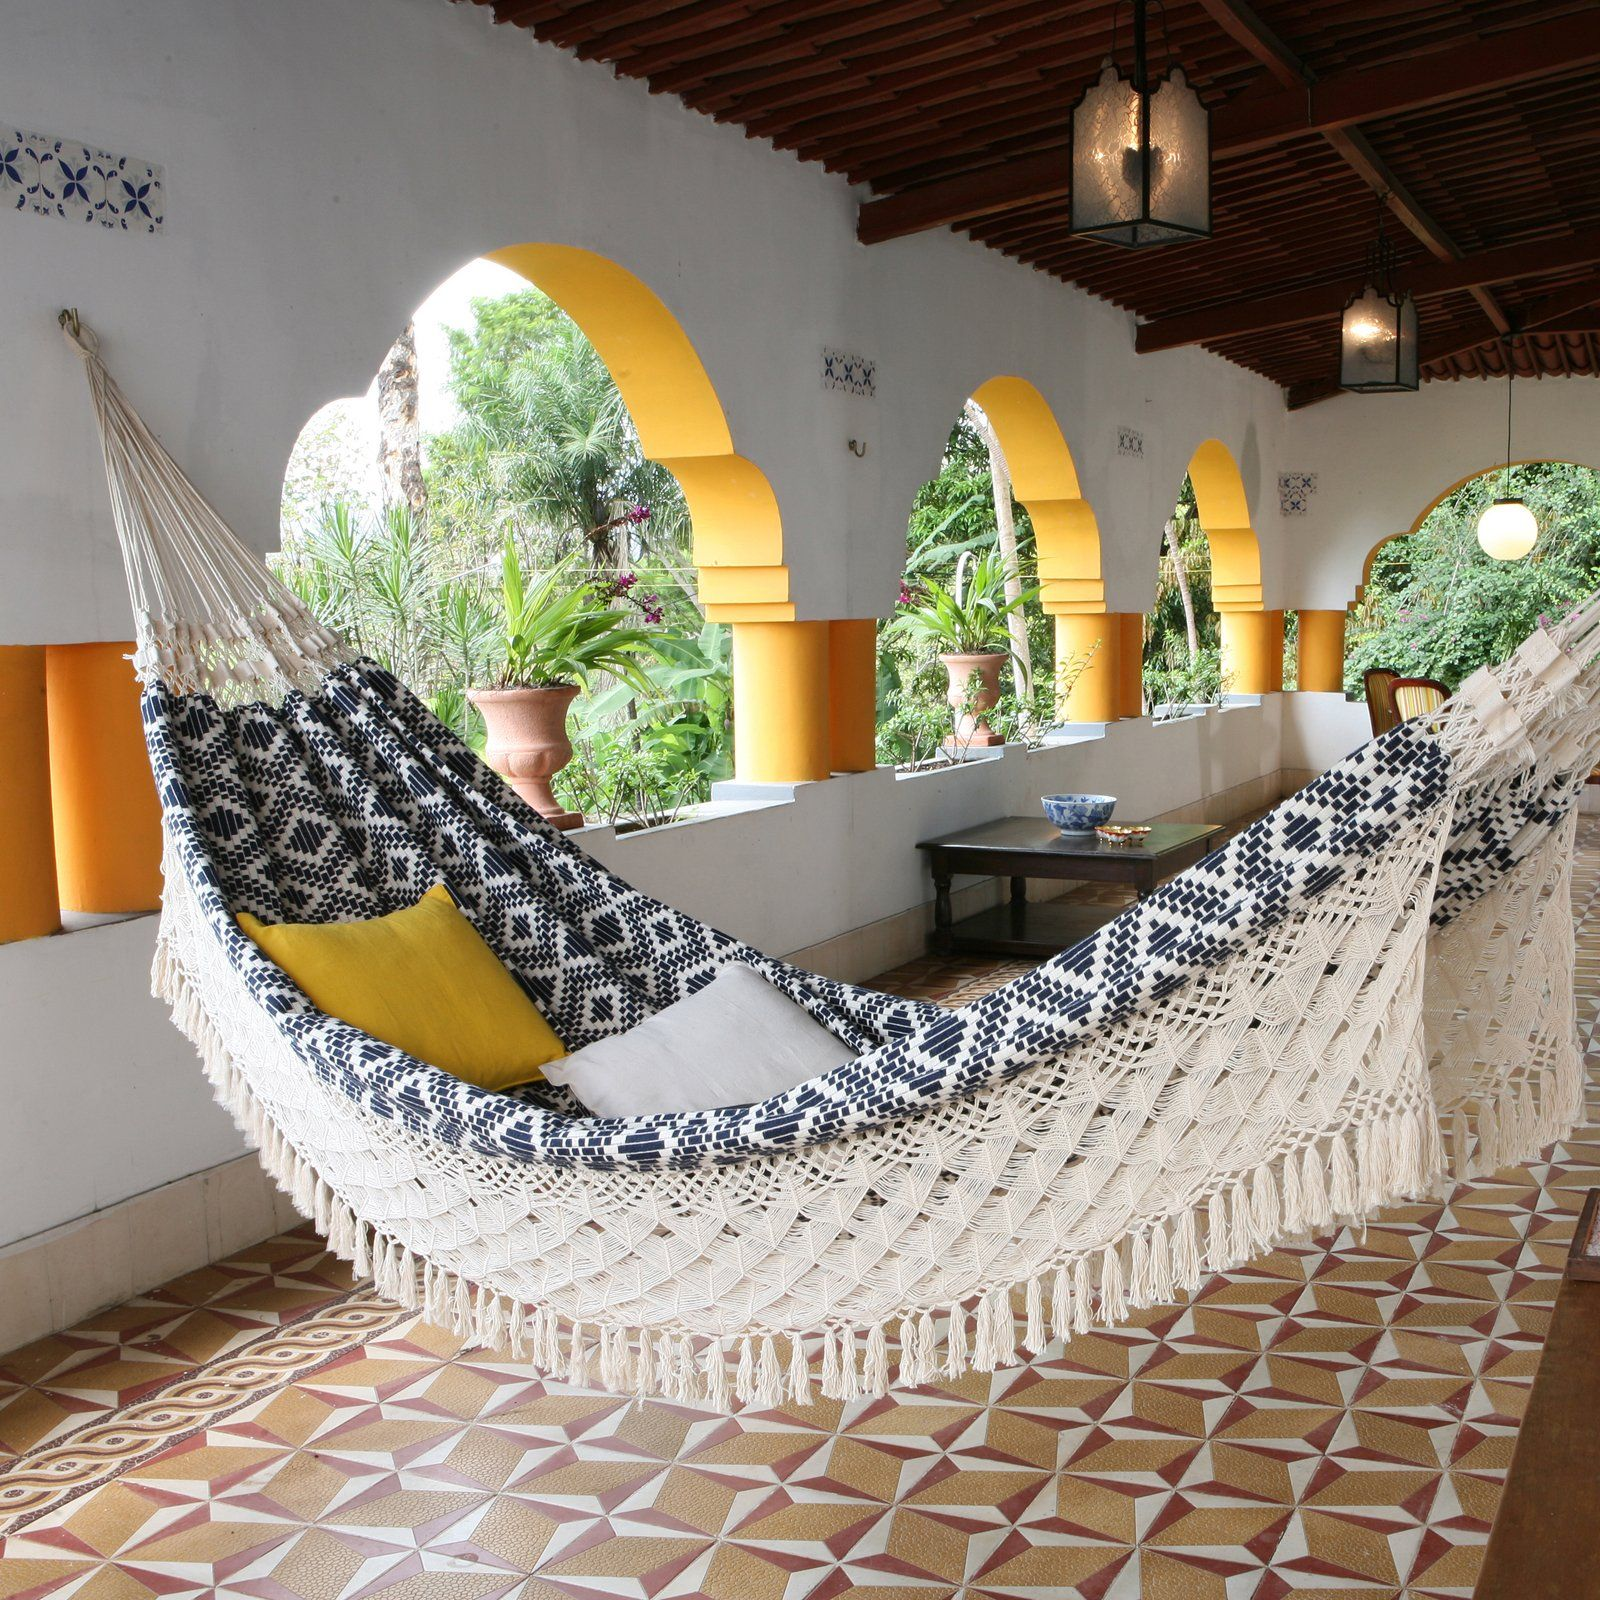 21 hammock design ideas add cozy atmosphere to your home 21 hammock design ideas add cozy atmosphere to your home      rh   pinterest co uk